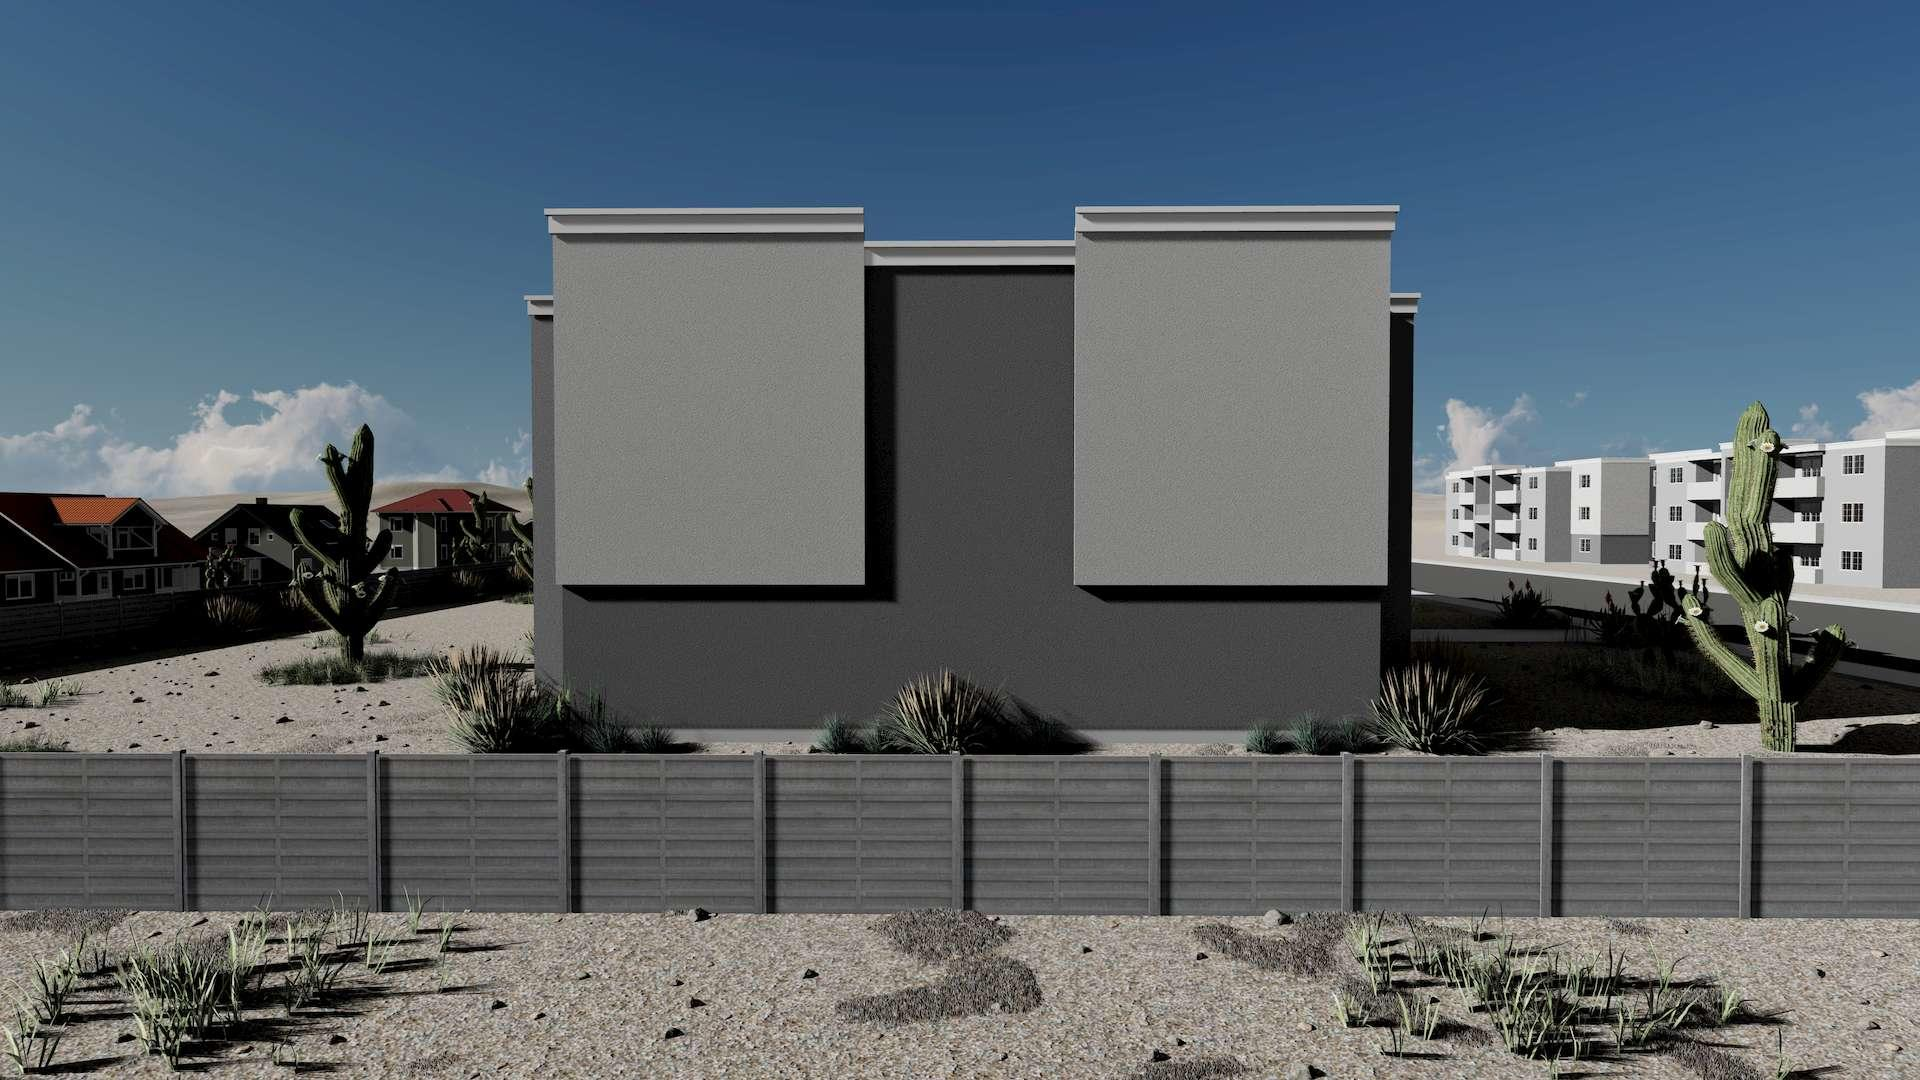 3D rendering of what FIG's cashflowing investments will look like in Arizona